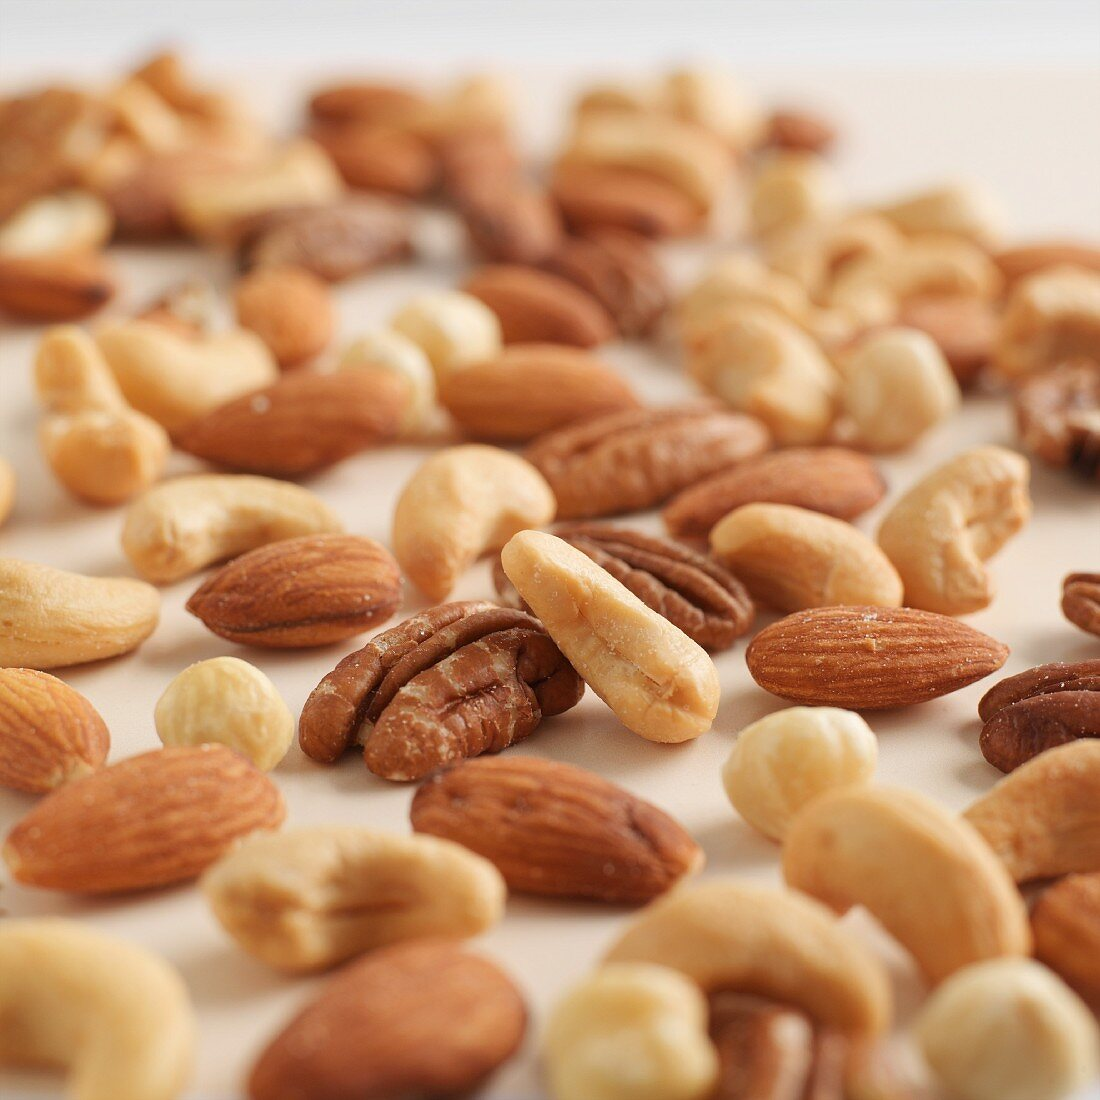 Assorted salted nuts